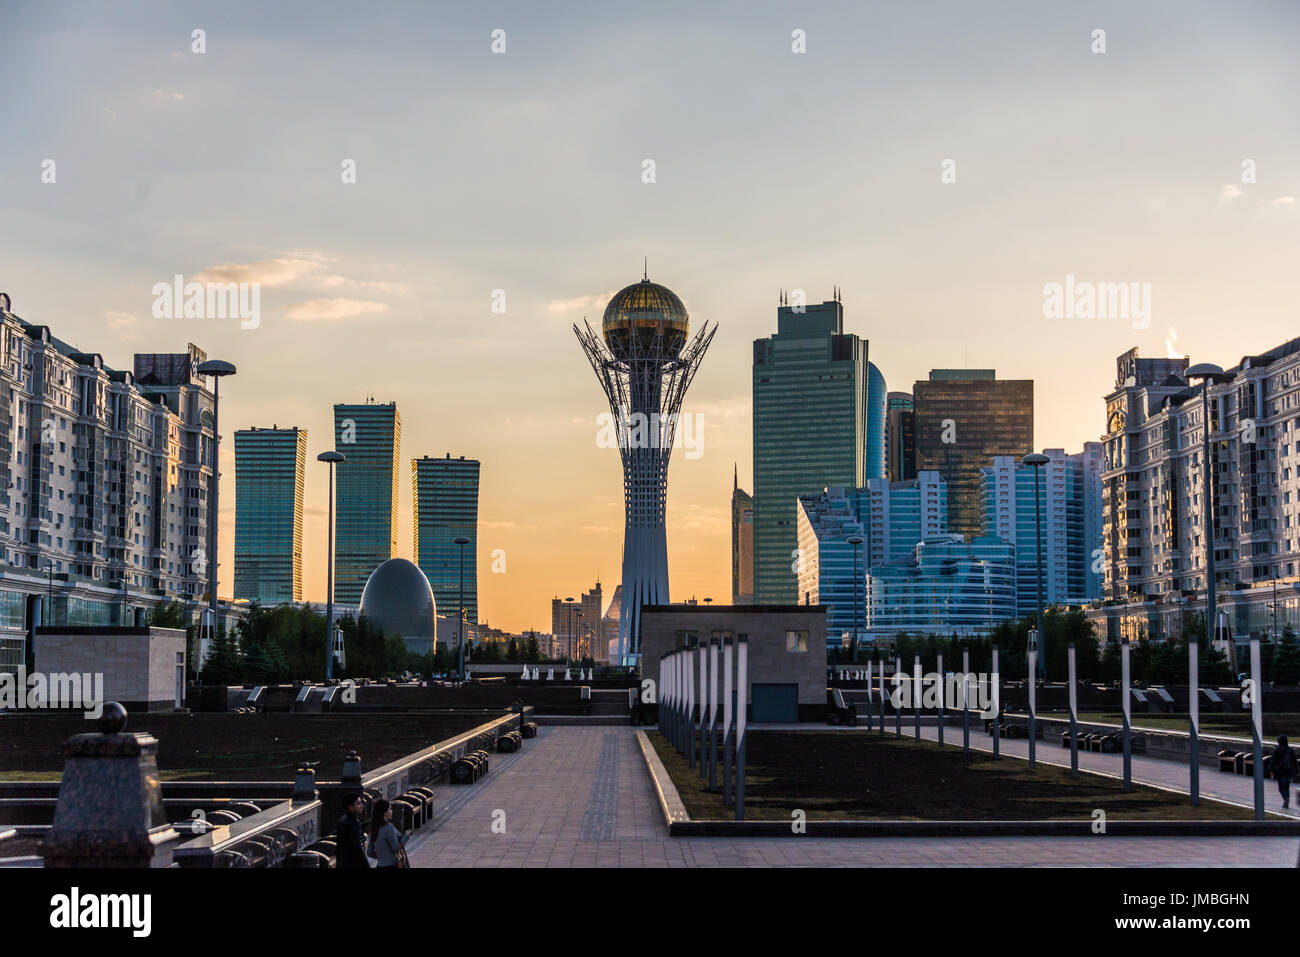 View of the Bayterek Tower in Astana Kazakhstan - Stock Image